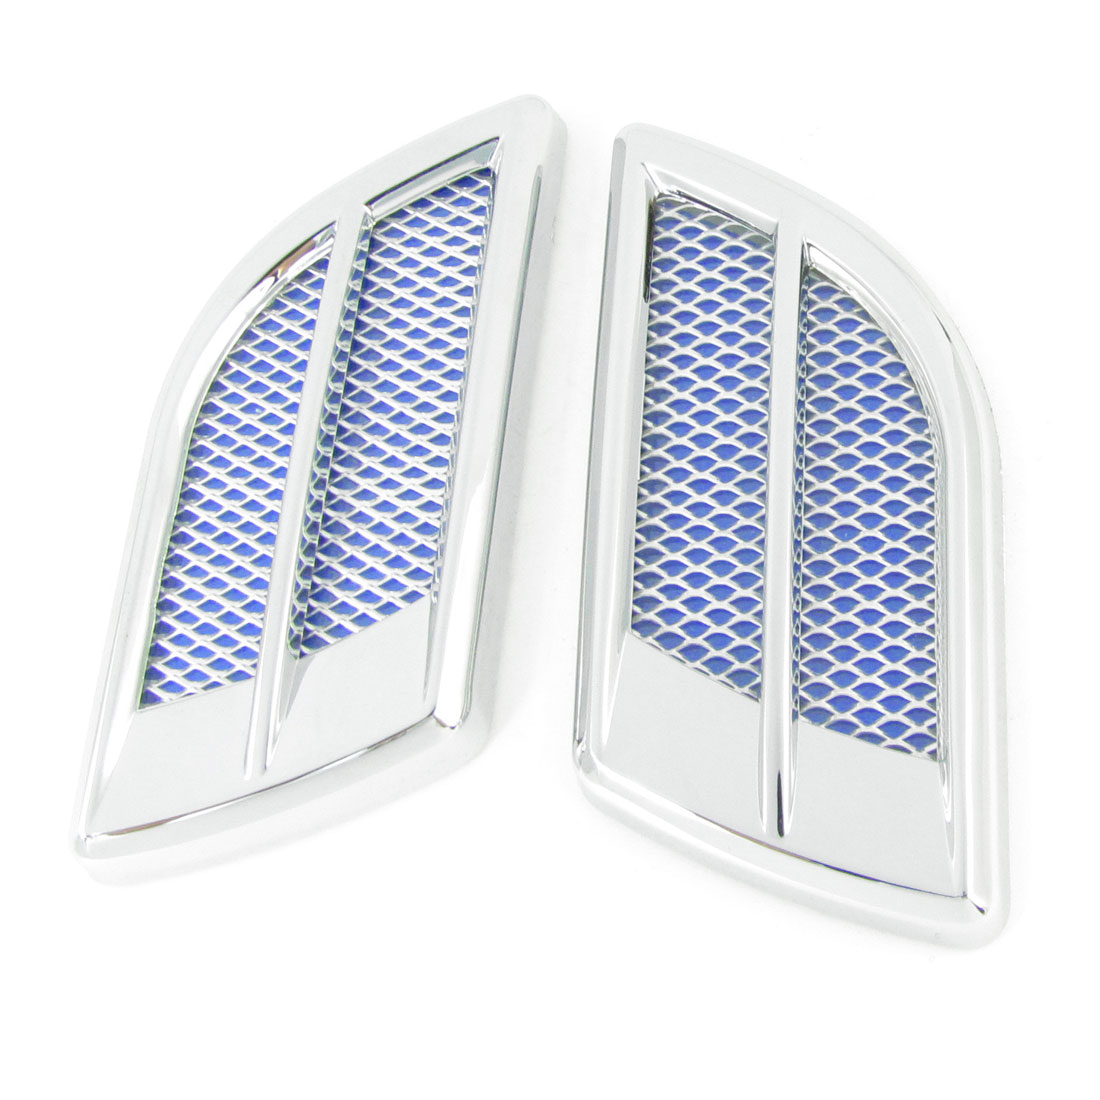 2 Pcs Auto Car Silver Tone Blue Air Vent Decorative 3D Sticker